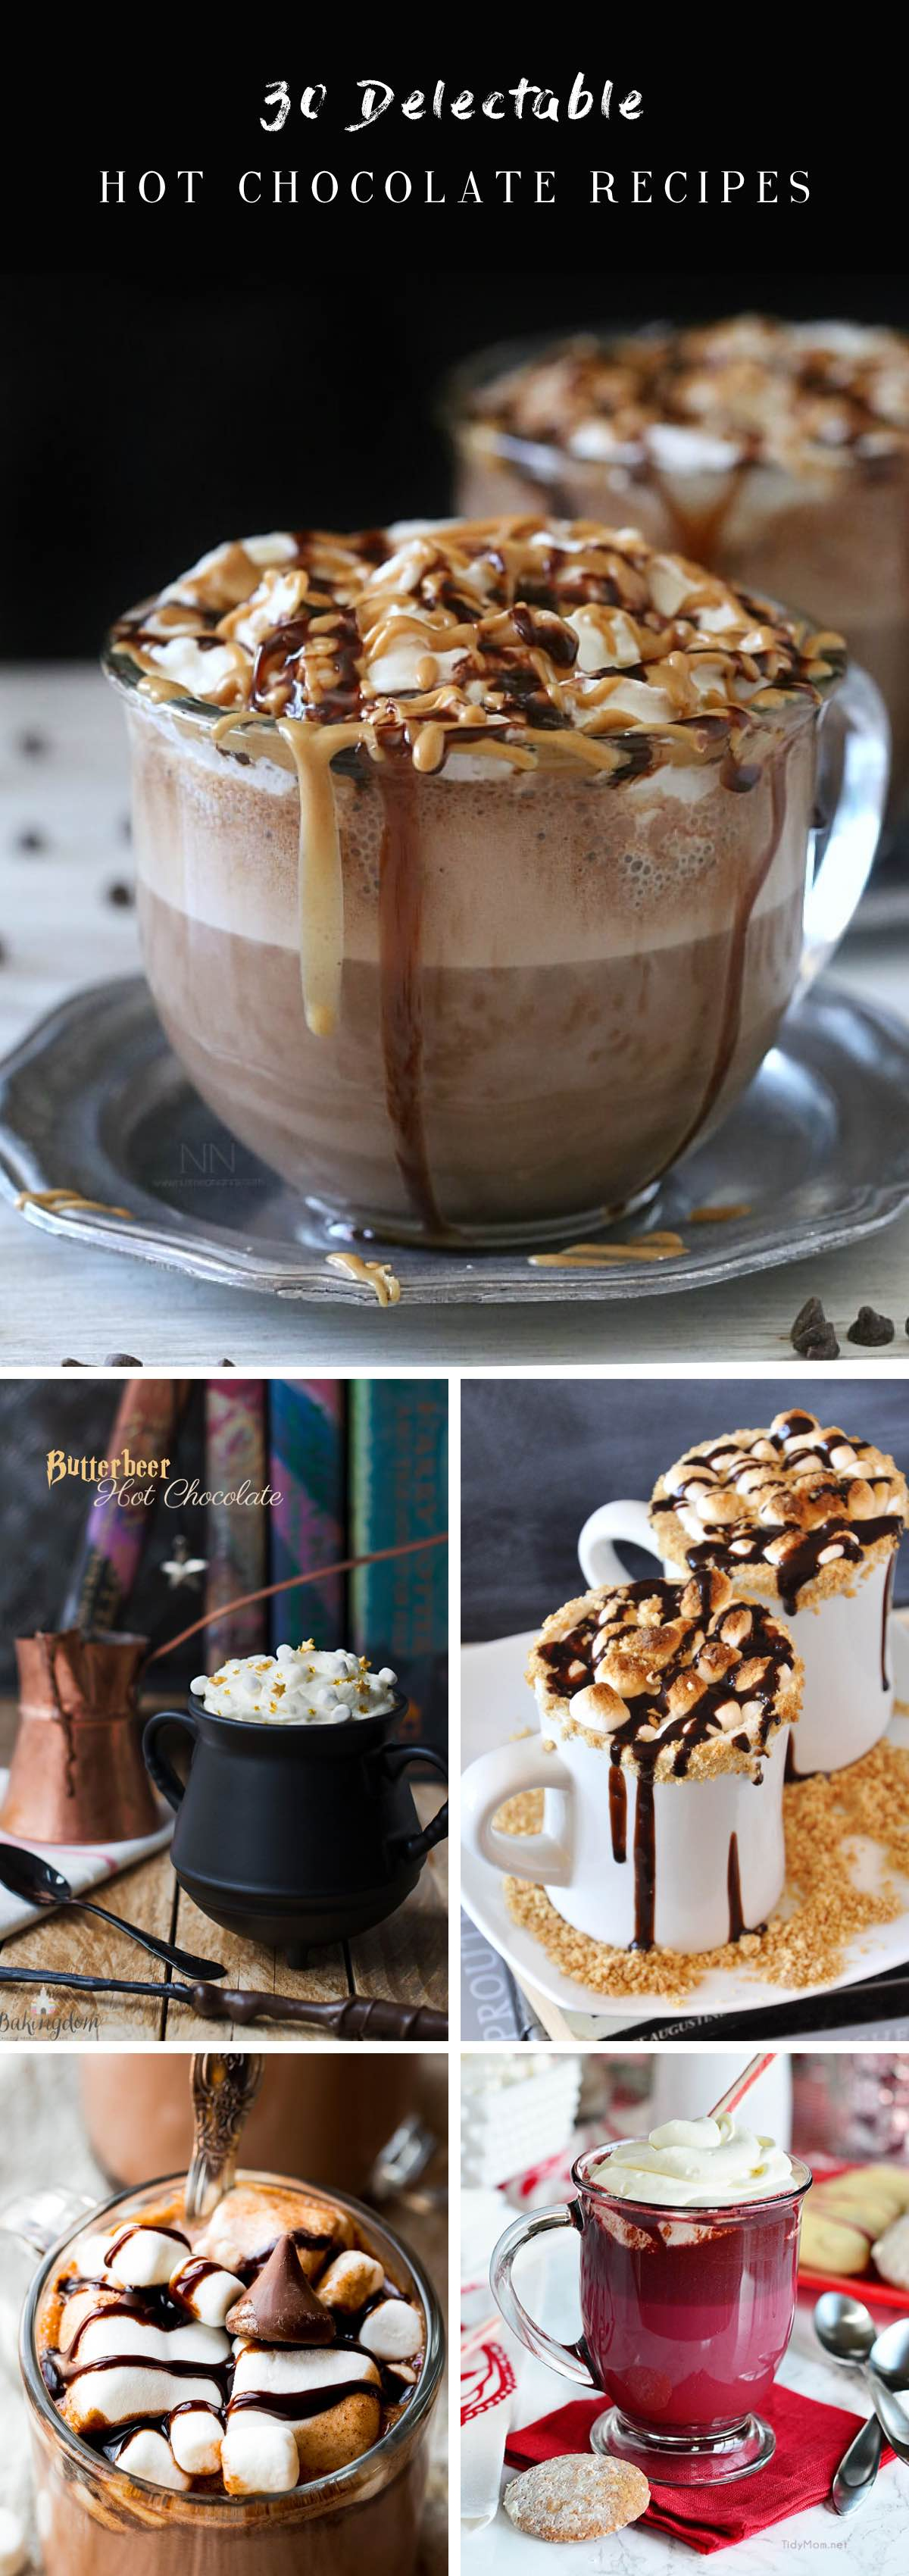 30 Delectable Hot Chocolate Recipes That Bring Comfort to Winters!